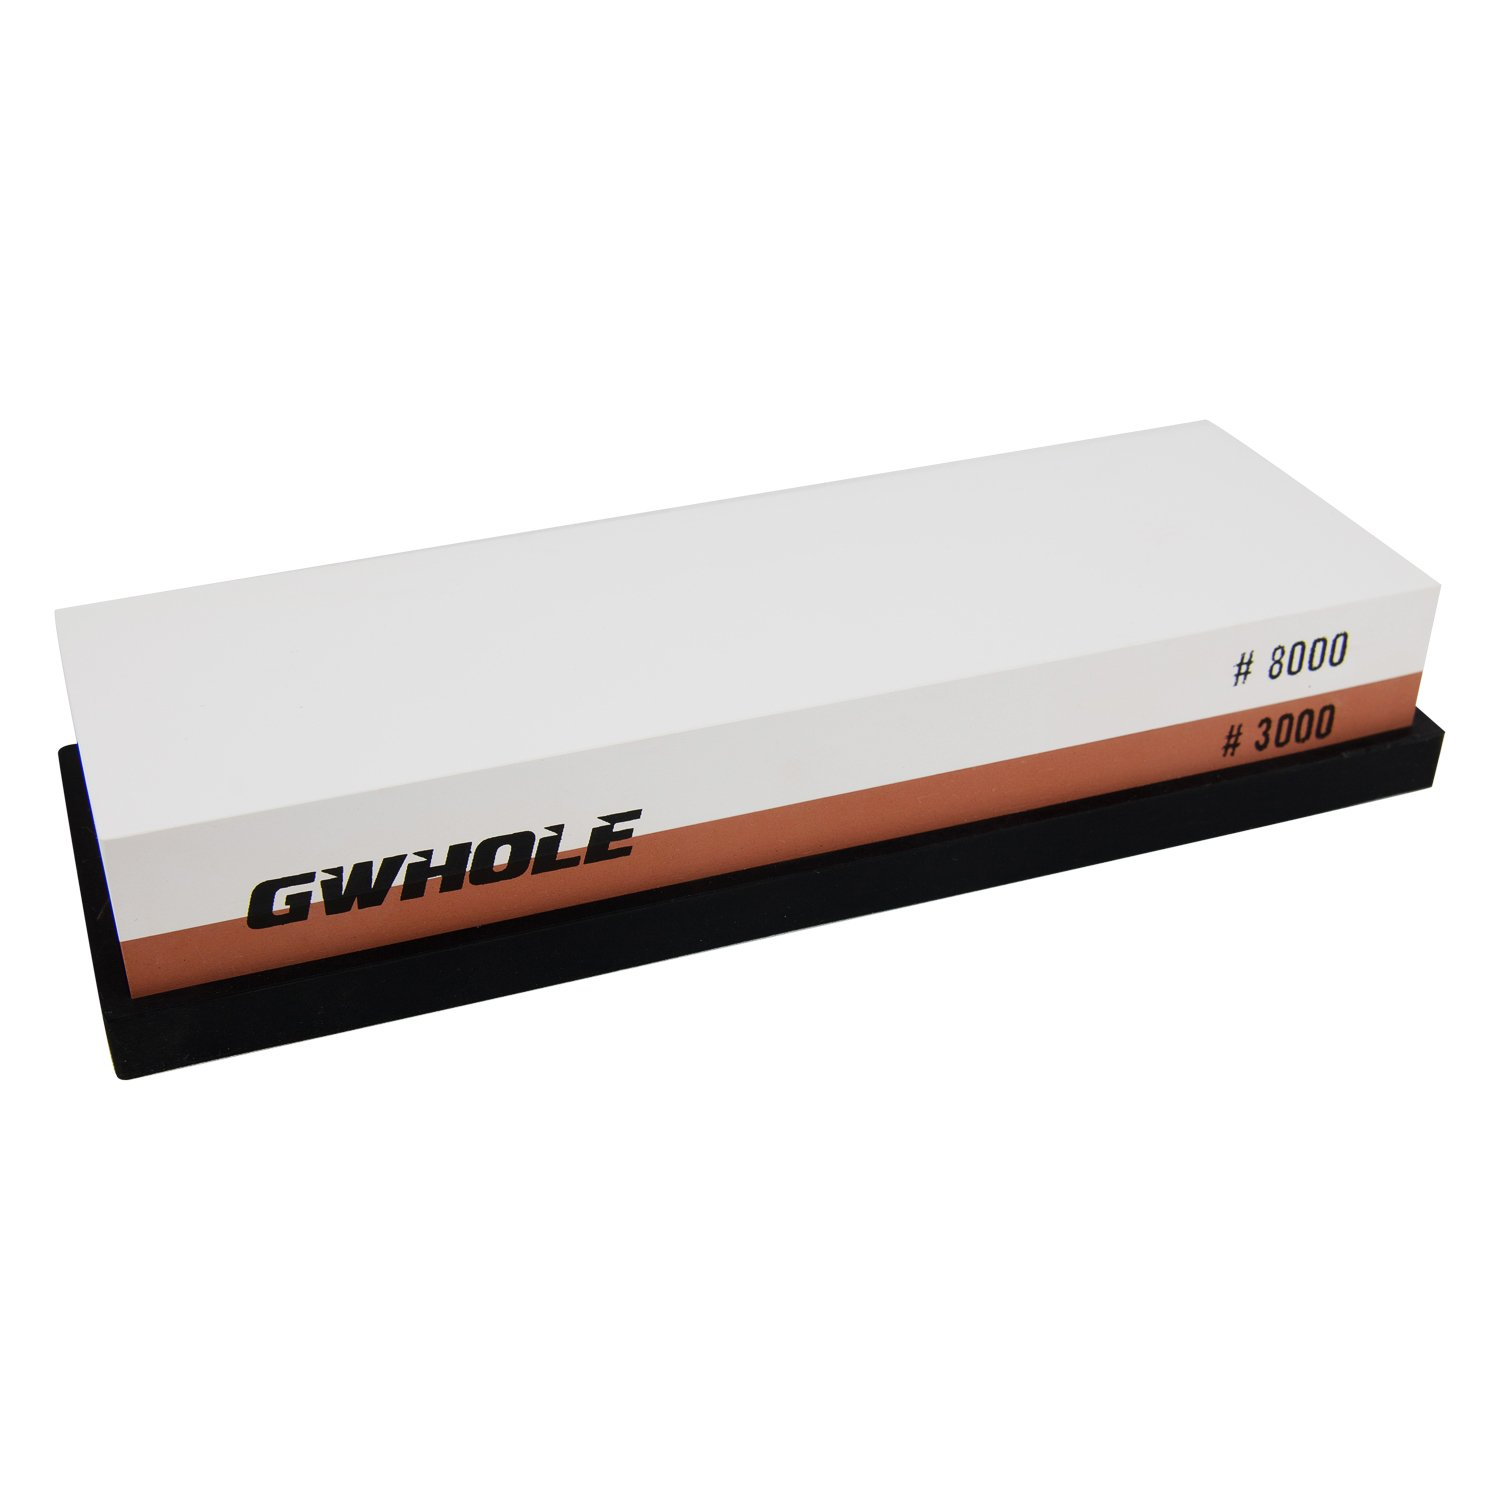 Inside our mobile sharpening shop - Whetstone Gwhole 3000 8000 Grit Knife Sharpening Stone With No Slip Rubber Holder